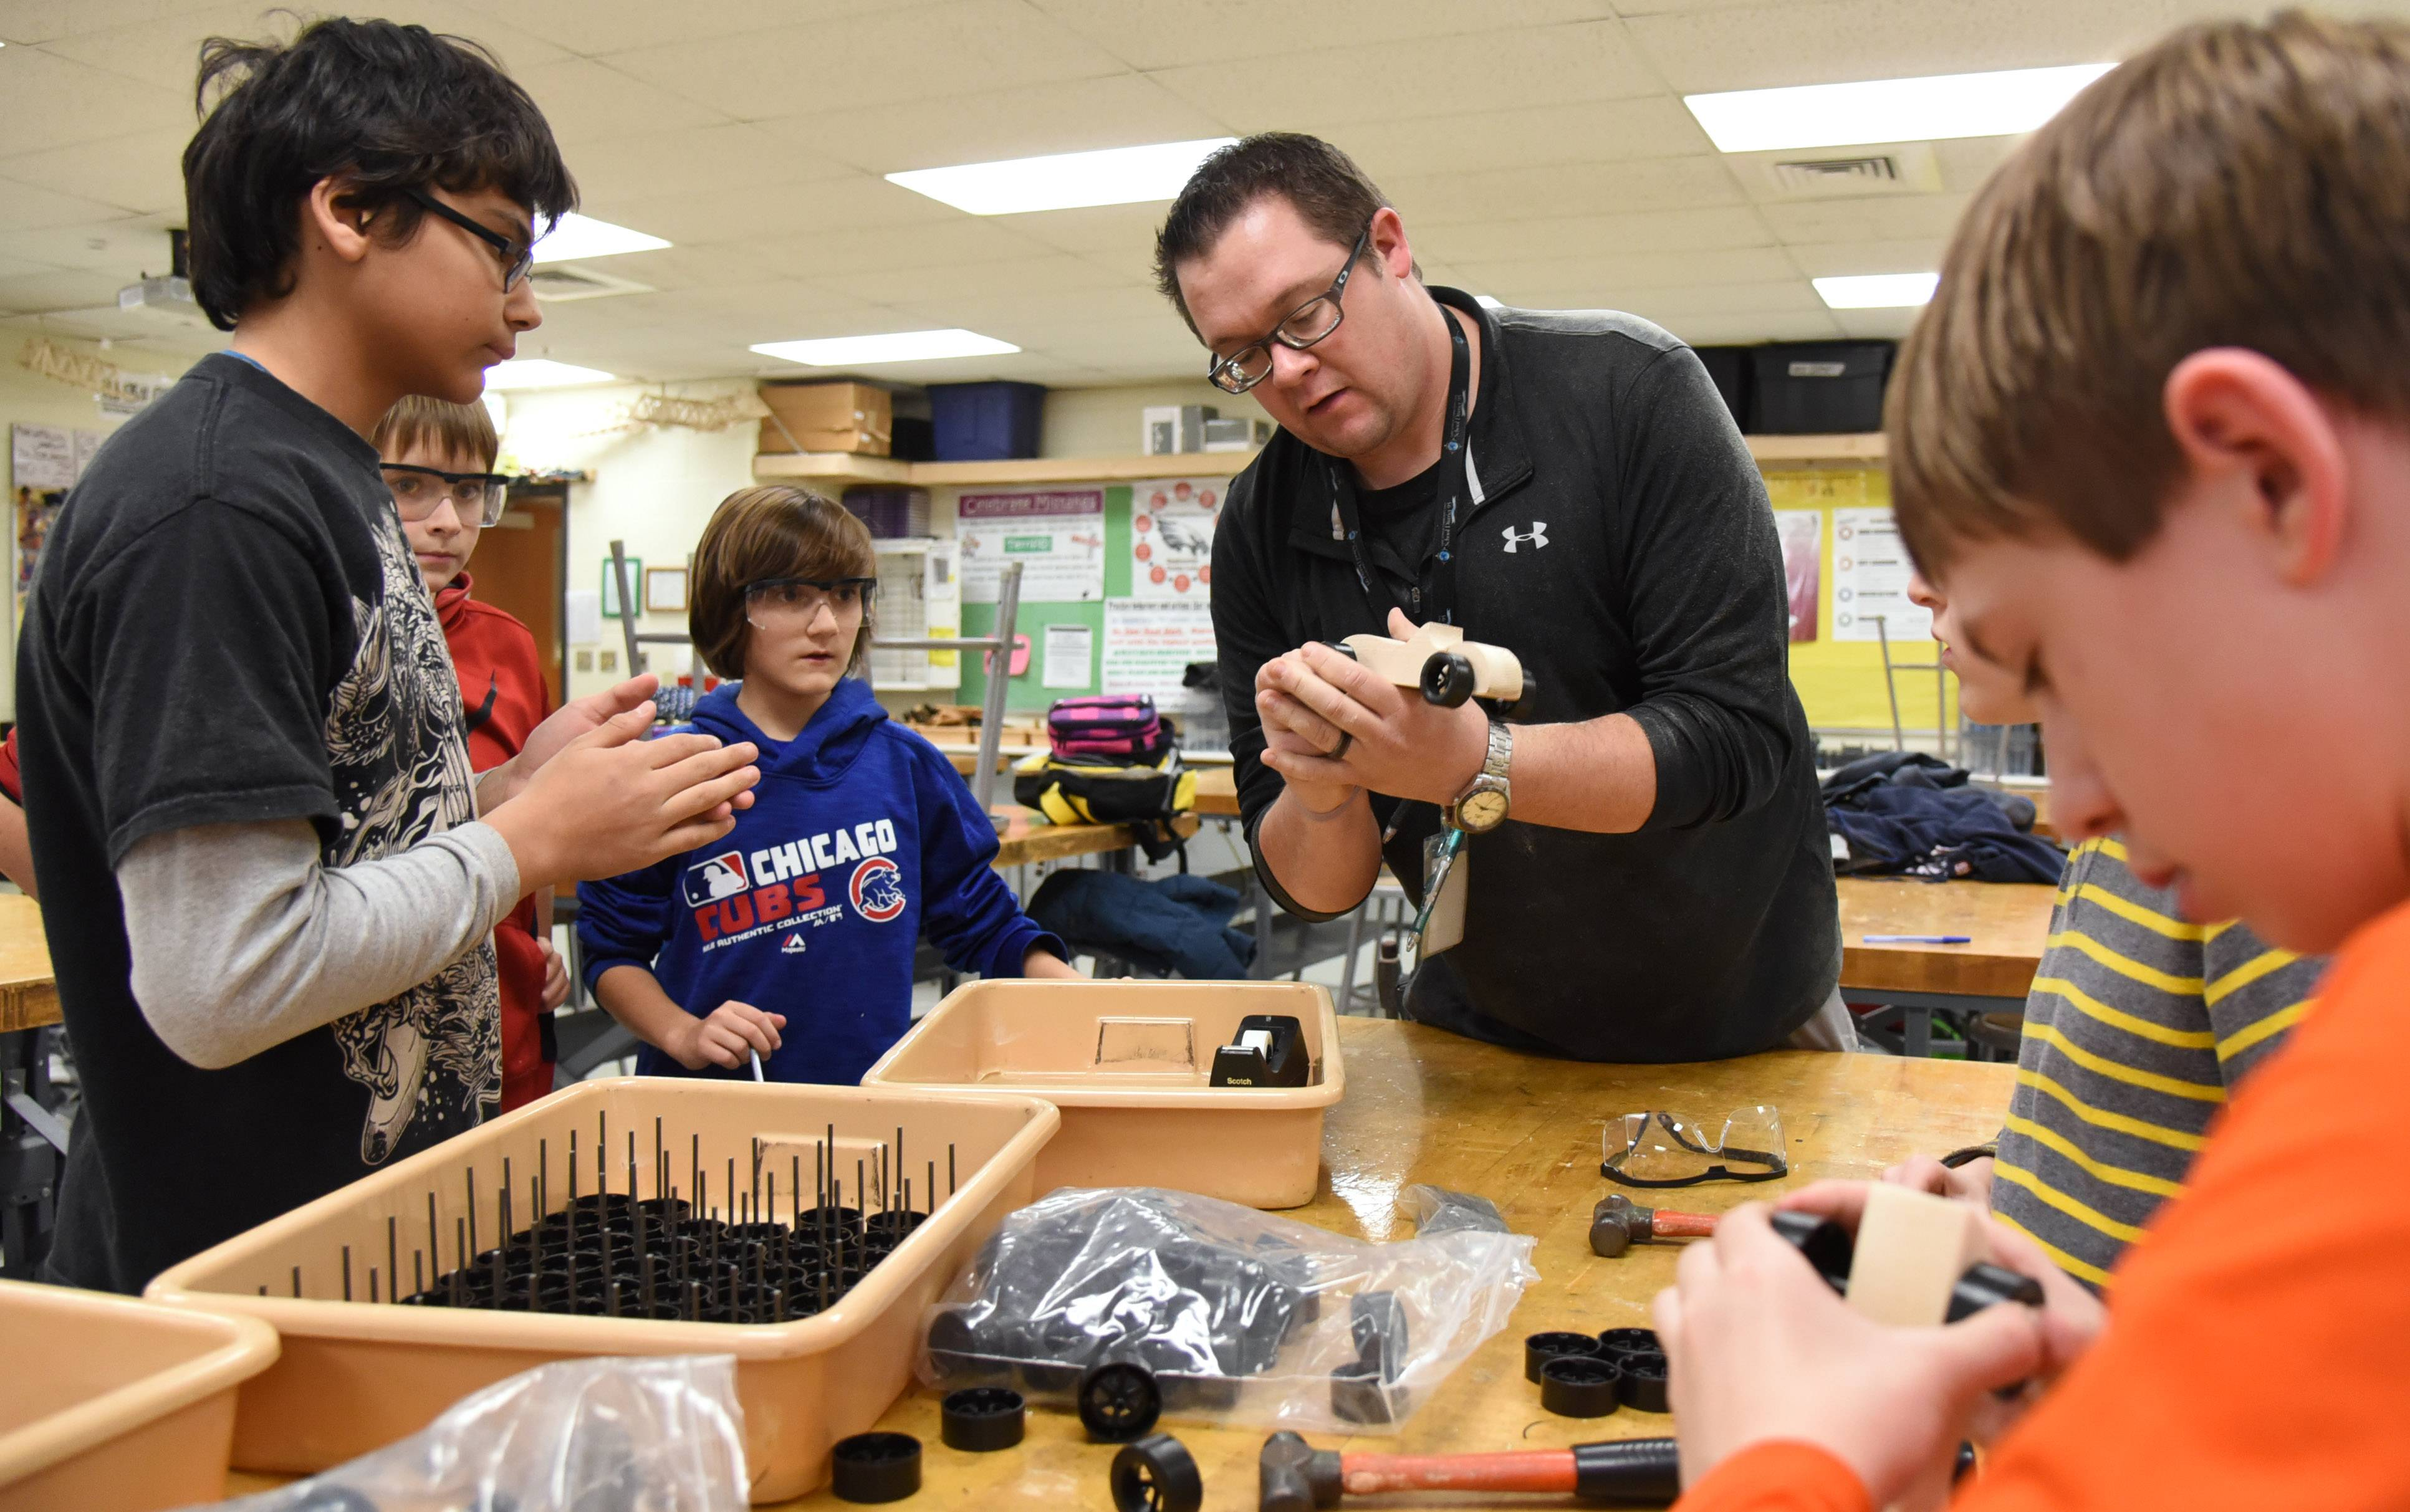 Lake Zurich Middle School South applied technology teacher Eric Prostka directs woodworking club students as they make toy cars presented Wednesday to the Caring Women's Connection of Hawthorn Woods. The toys will be given to children in need.